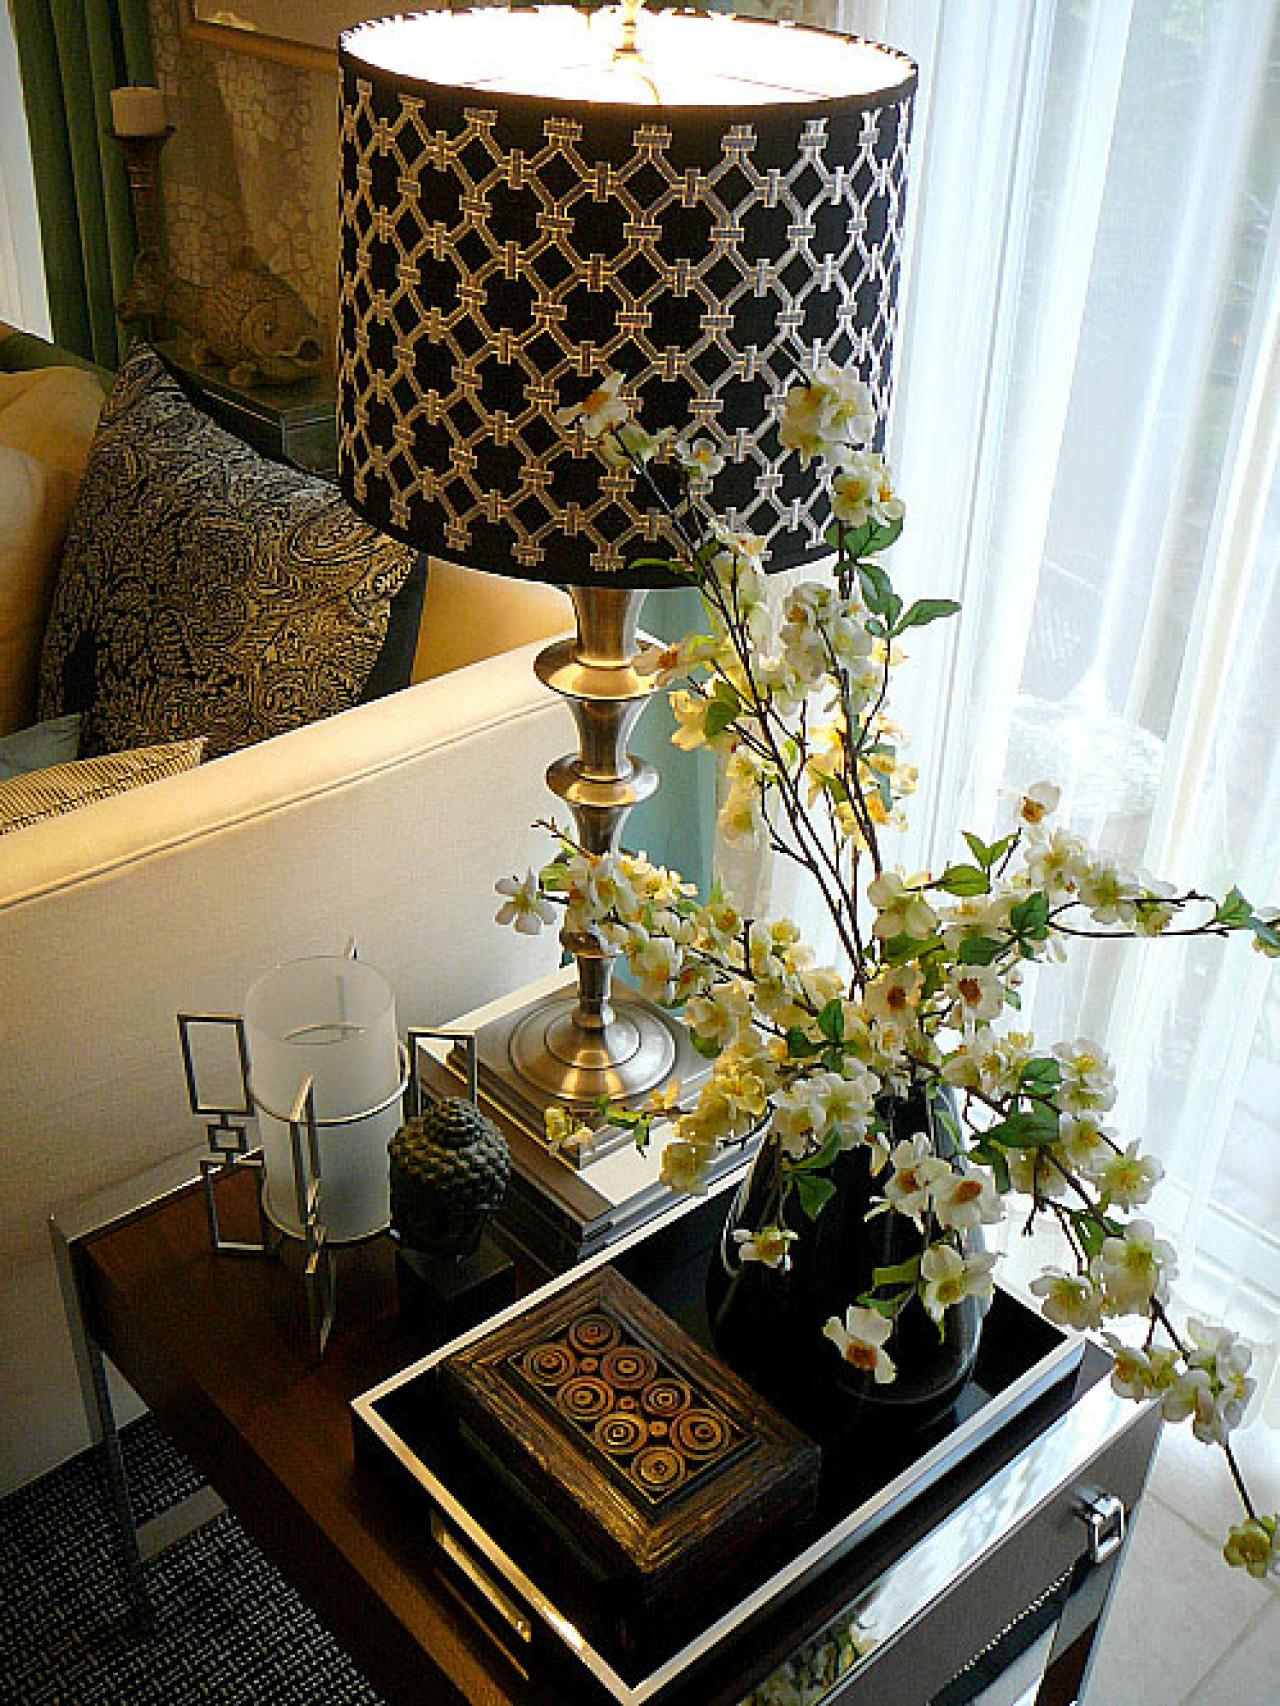 Modern Living Room Decorating: Prepare Your Modern Living Room Decor For Easter